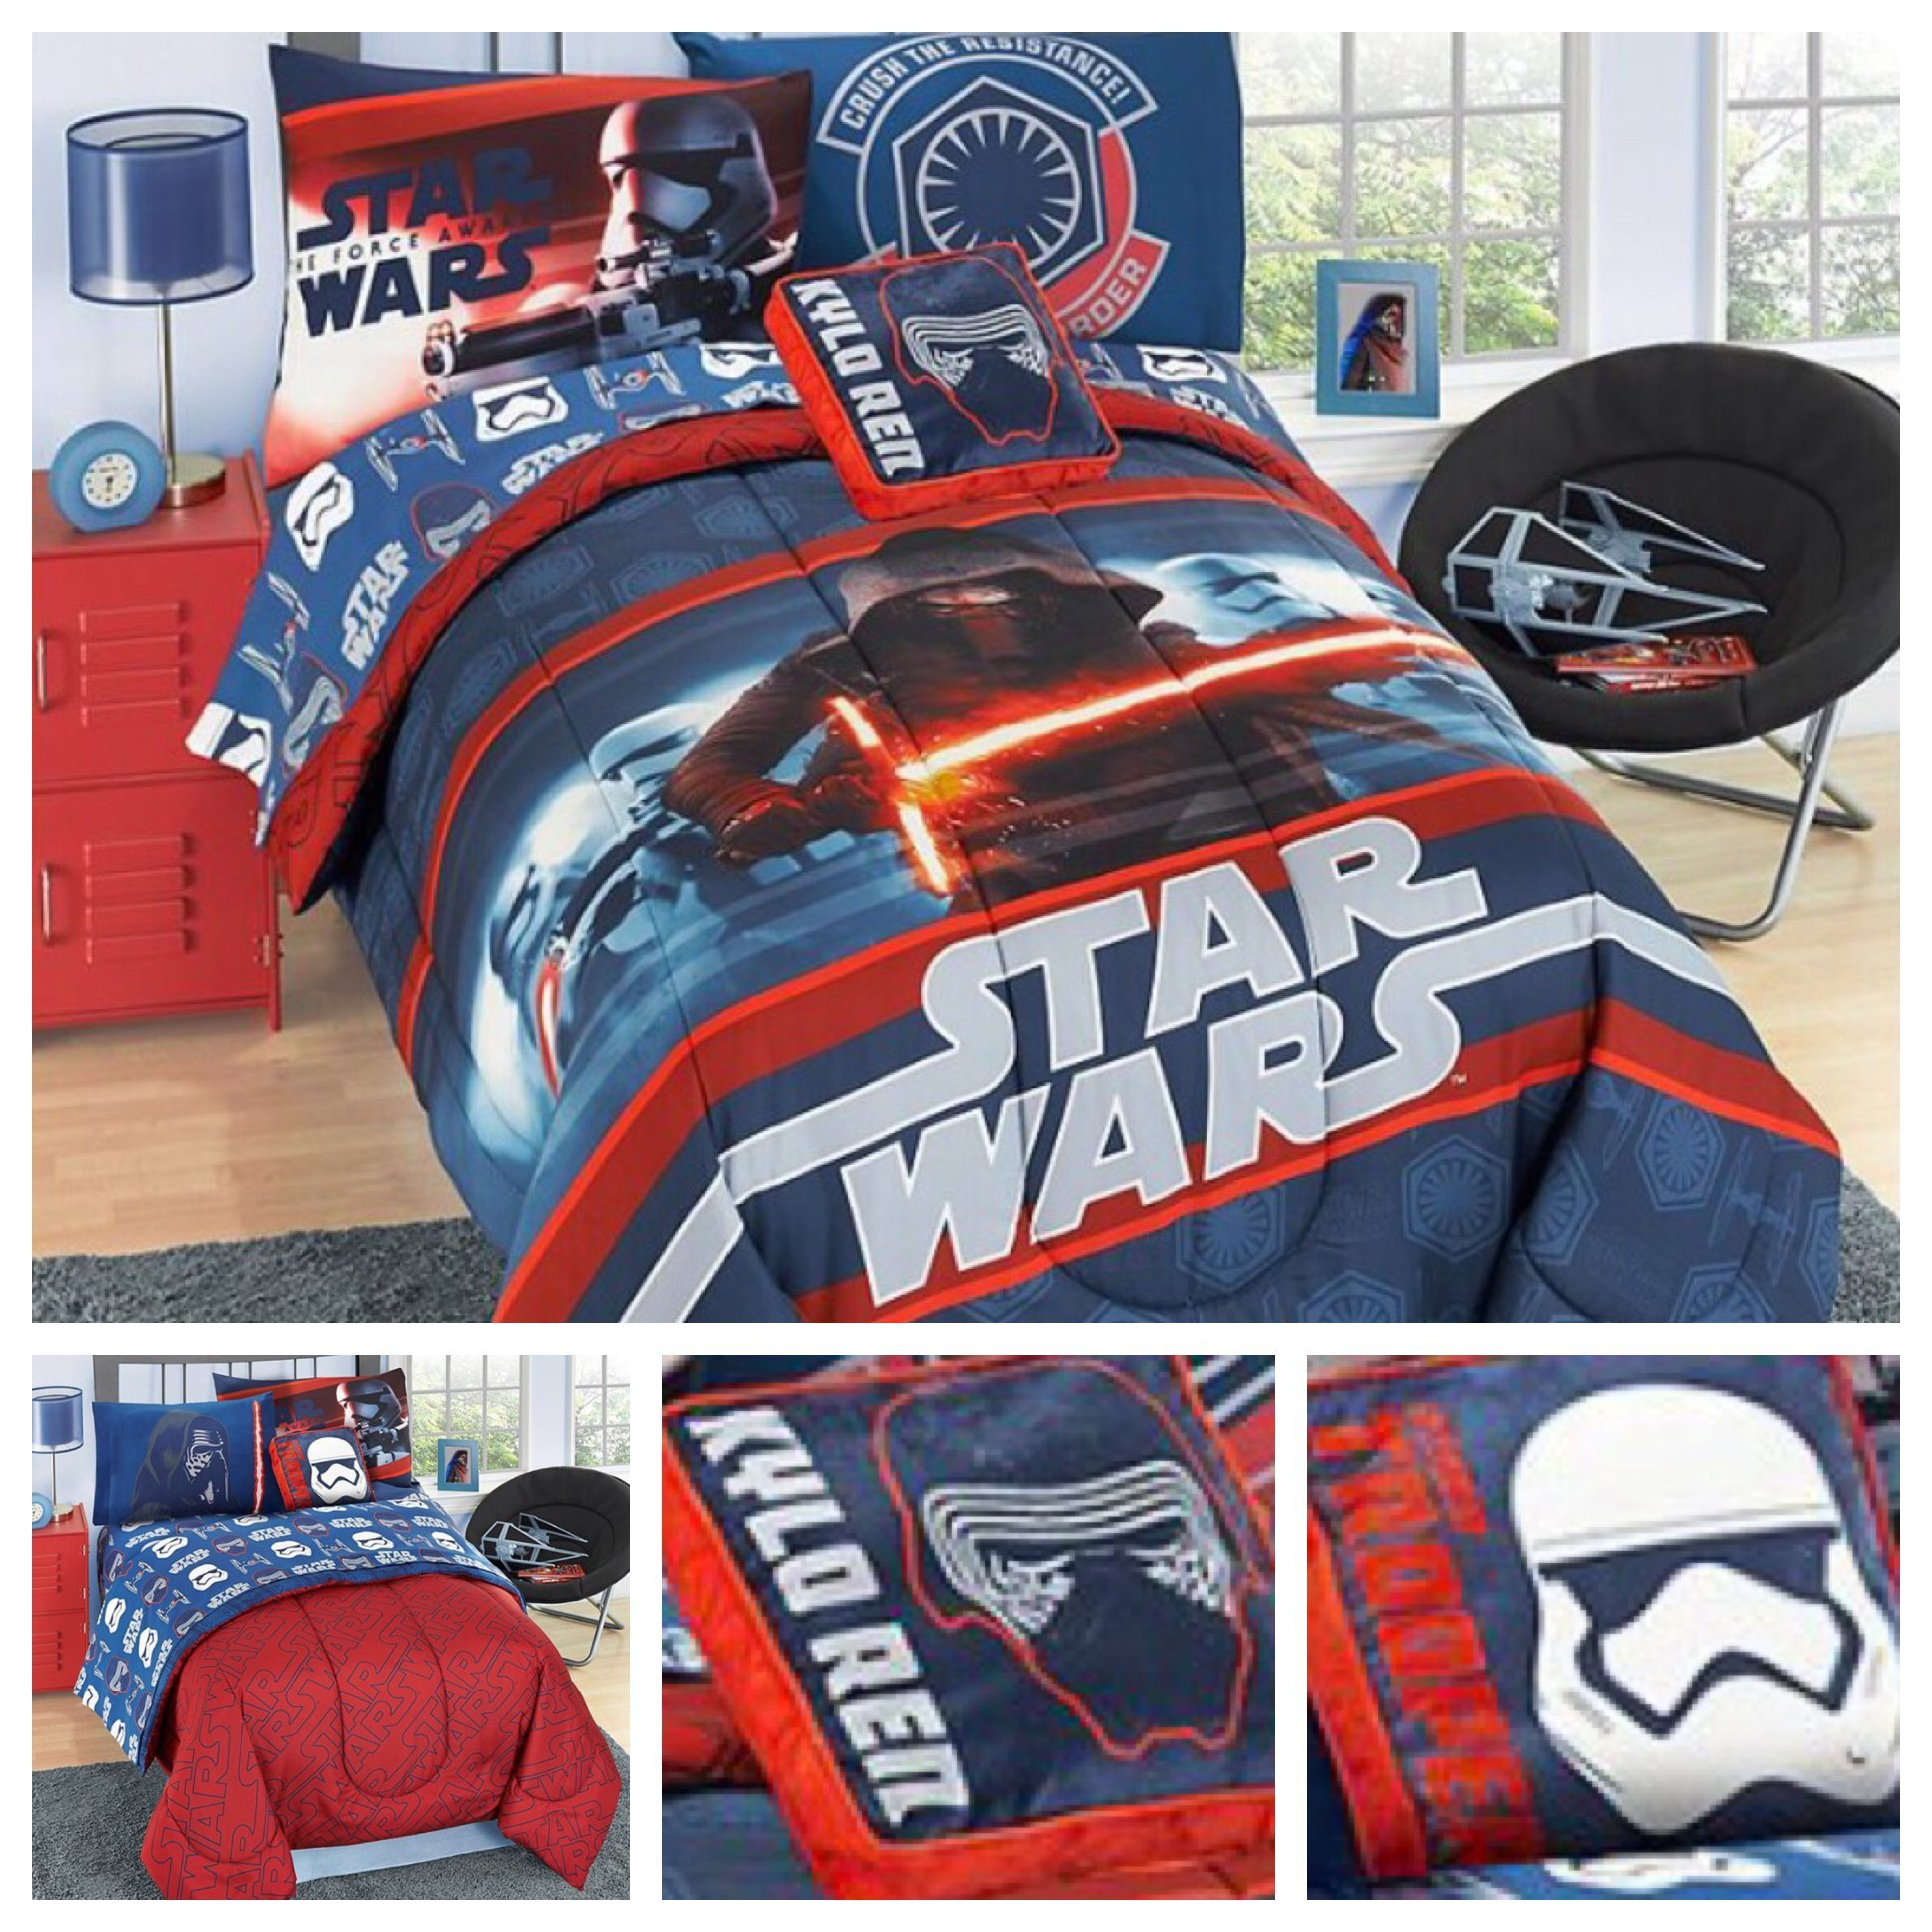 Star Wars Episode 7 Reversible Bedding Comforter Set and Kylo Ren Pillow - Twin